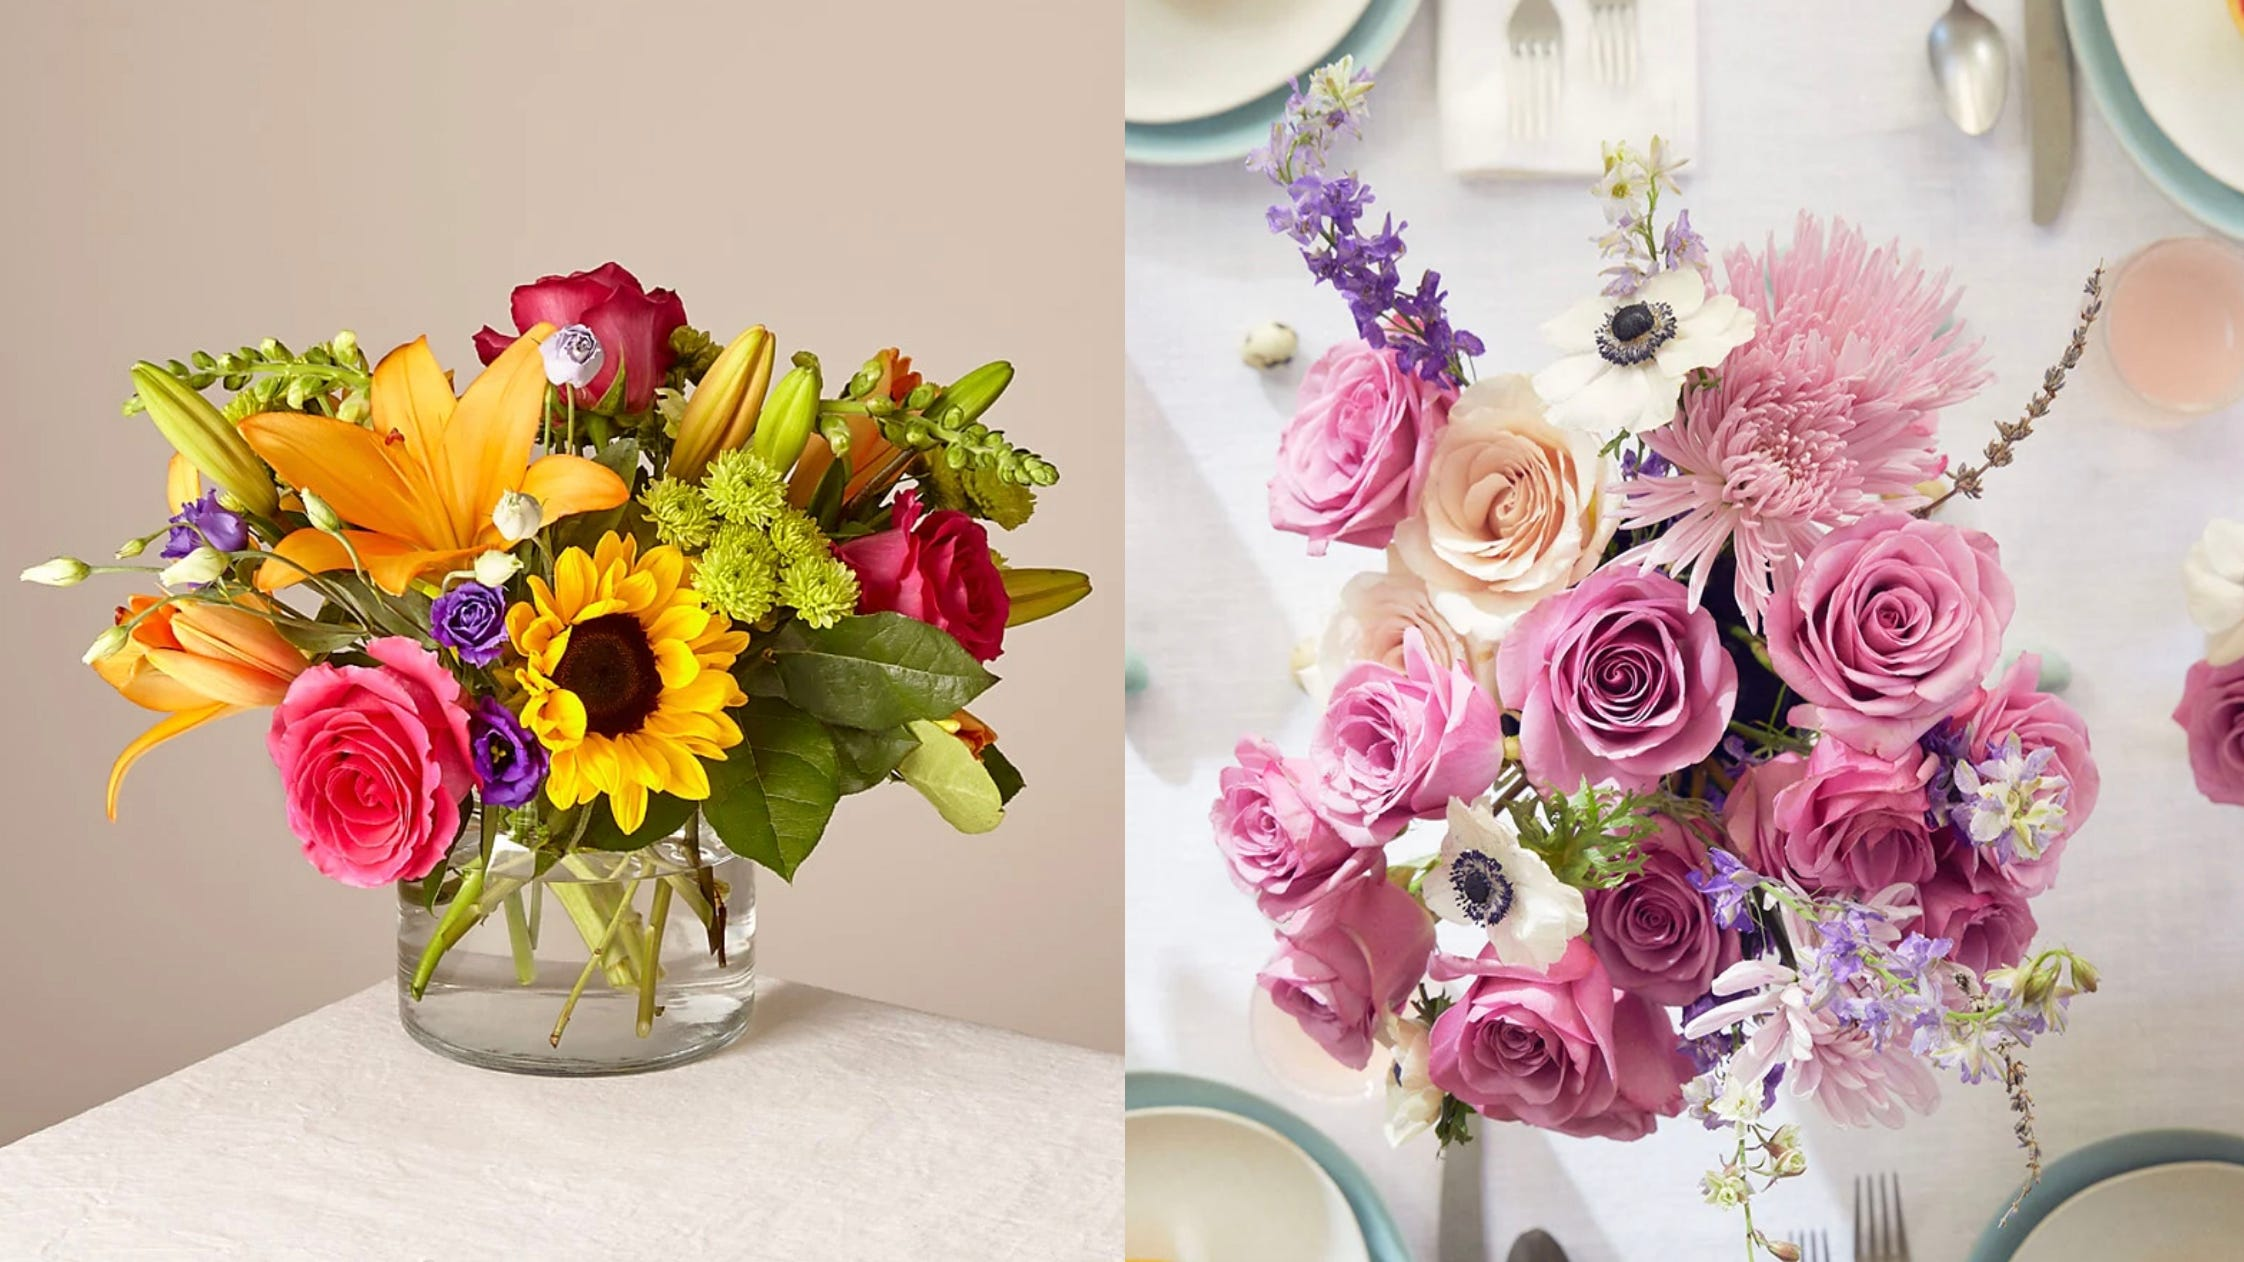 The 12 best places to order flowers online for Mother's Day